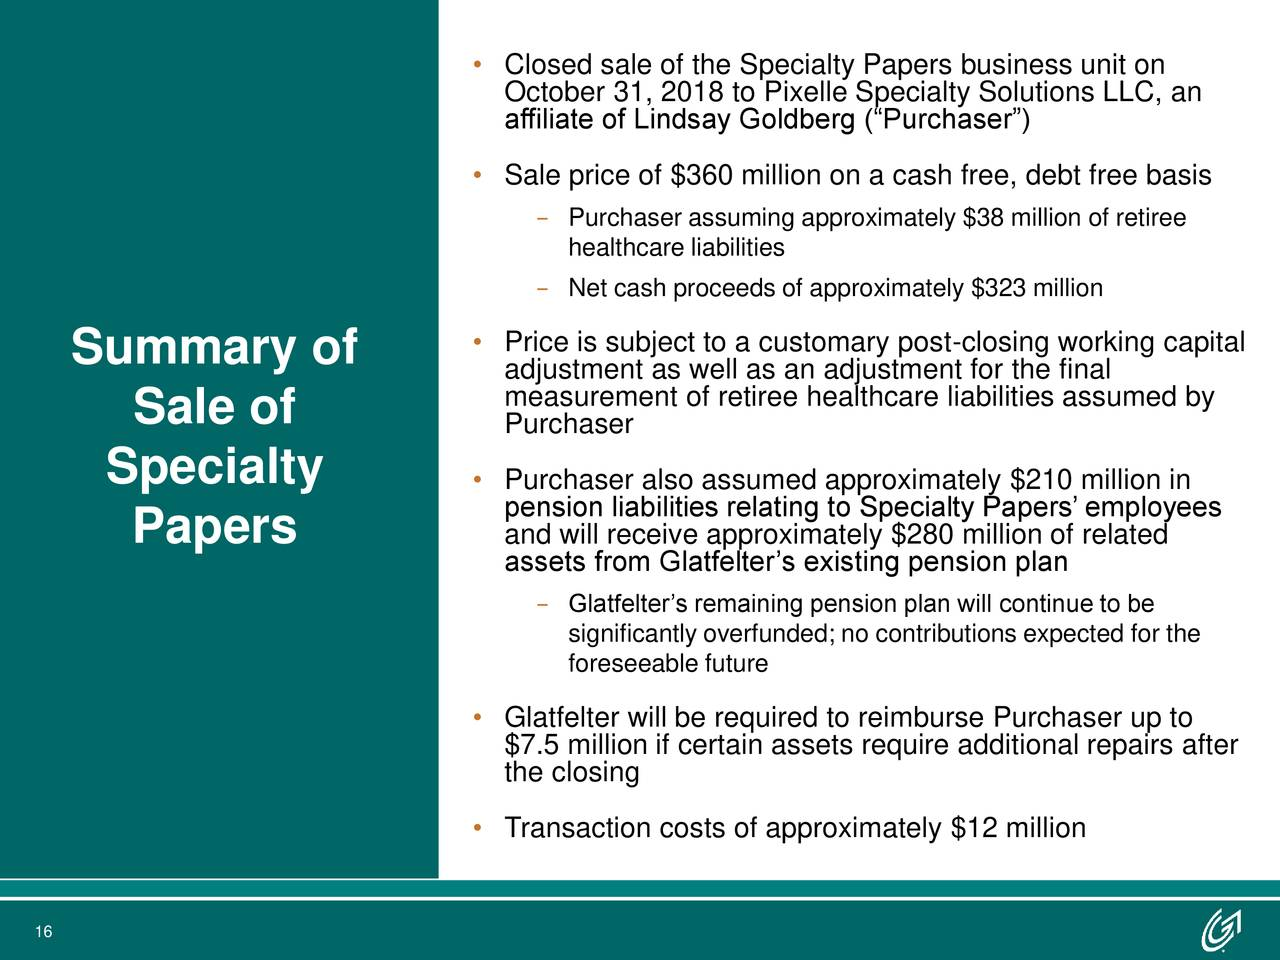 """affiliate of Lindsay Goldberg (""""Purchaser"""") • Sale price of $360 million on a cash free, debt free basis − Purchaser assuming approximately $38 million of retiree healthcare liabilities − Net cash proceeds of approximately $323 million Summary of • Price is subject to a customary post-closing working capital adjustment as well as an adjustment for the final measurement of retiree healthcare liabilities assumed by Sale of Purchaser Specialty • Purchaser also assumed approximately $210 million in pension liabilities relating to Specialty Papers' employees Papers and will receive approximately $280 million of related assets from Glatfelter's existing pension plan − Glatfelter's remaining pension plan will continue to be significantly overfunded; no contributions expected for the foreseeable future • Glatfelter will be required to reimburse Purchaser up to $7.5 million if certain assets require additional repairs after the closing • Transaction costs of approximately $12 million 16"""